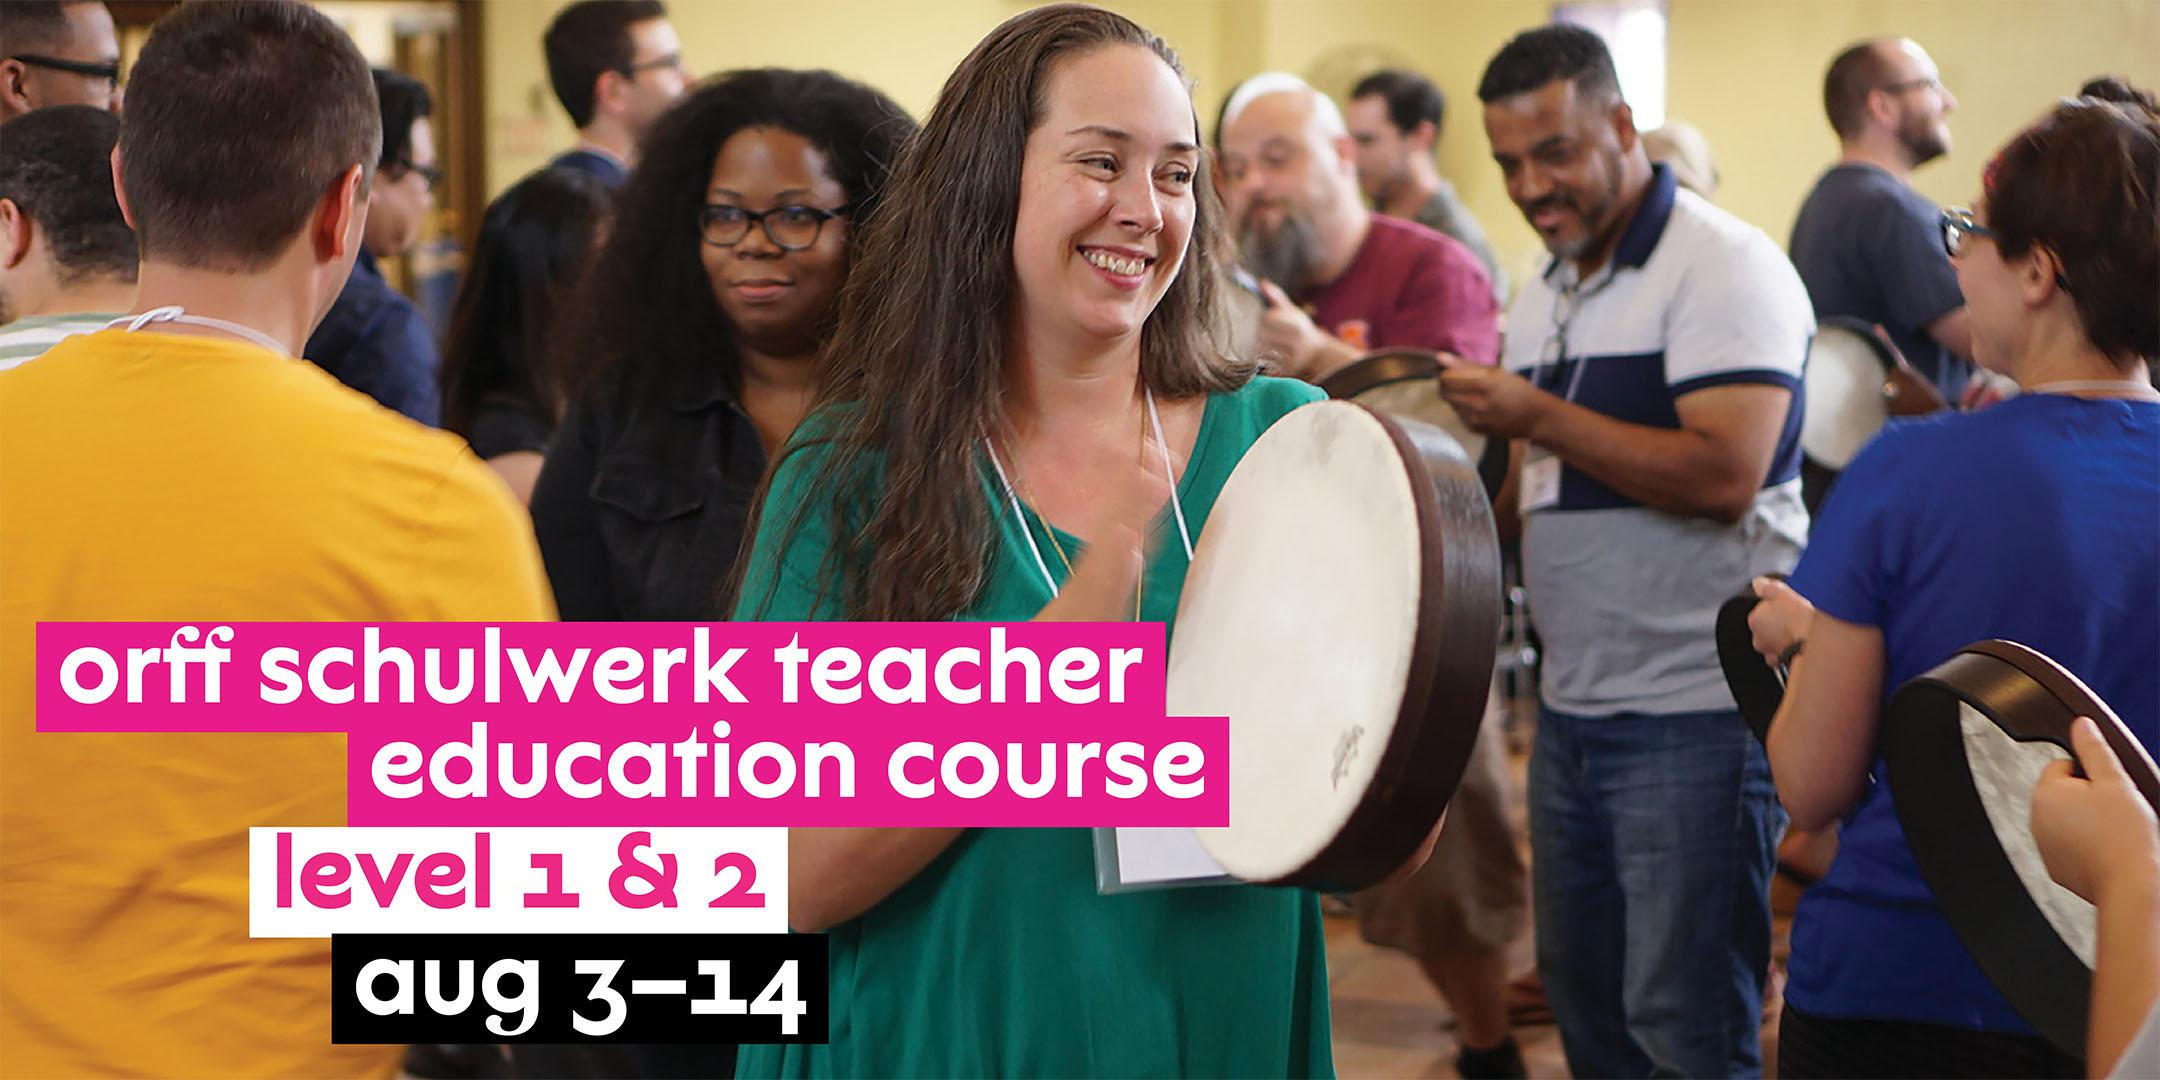 NJPAC Orff Schulwerk Teacher Education Course - Level 1 & 2